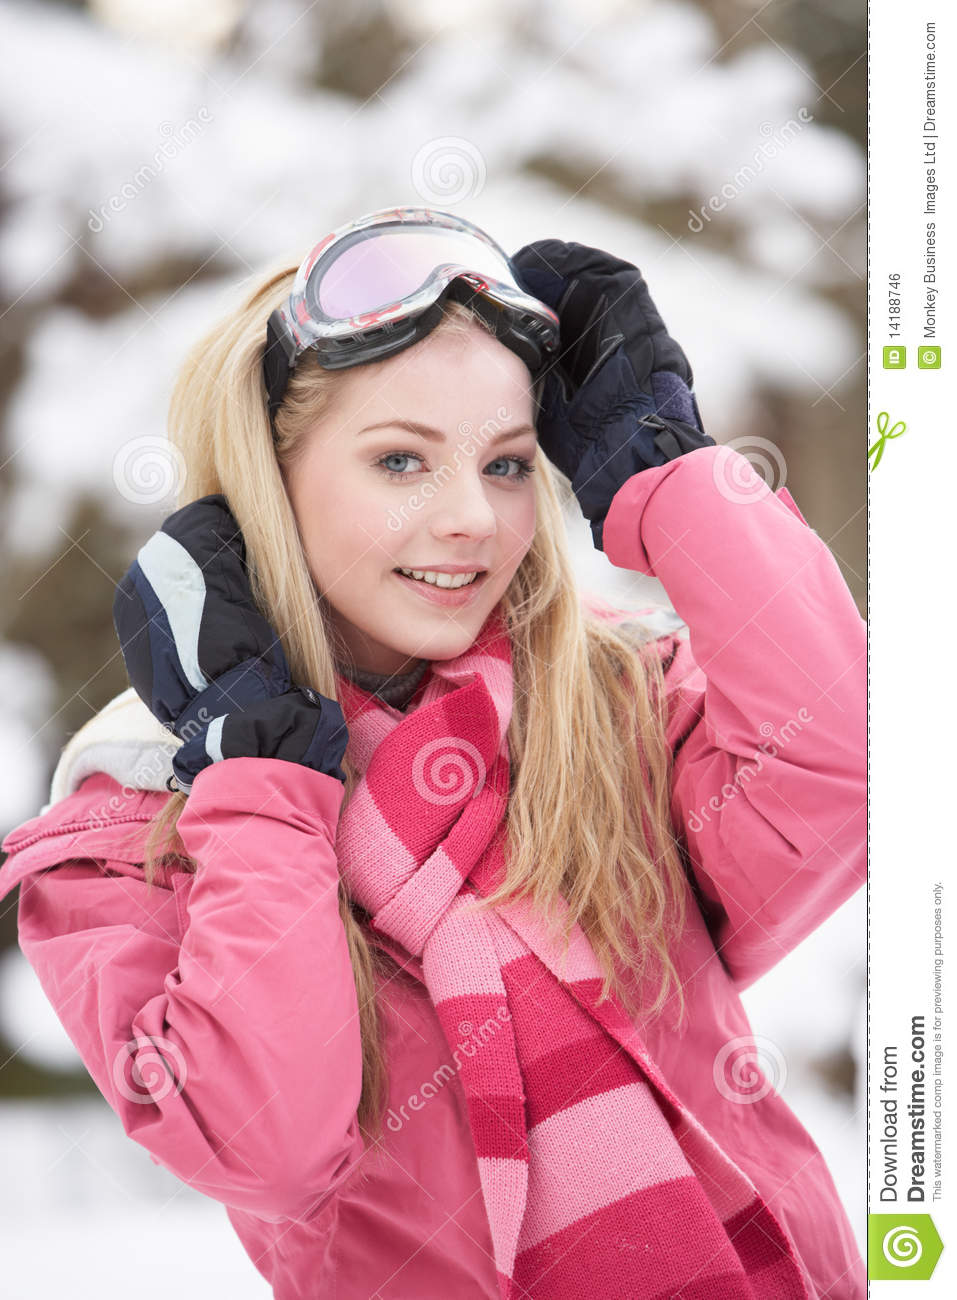 Porn Pictures Of Teens Wearing Pink Outfits 56